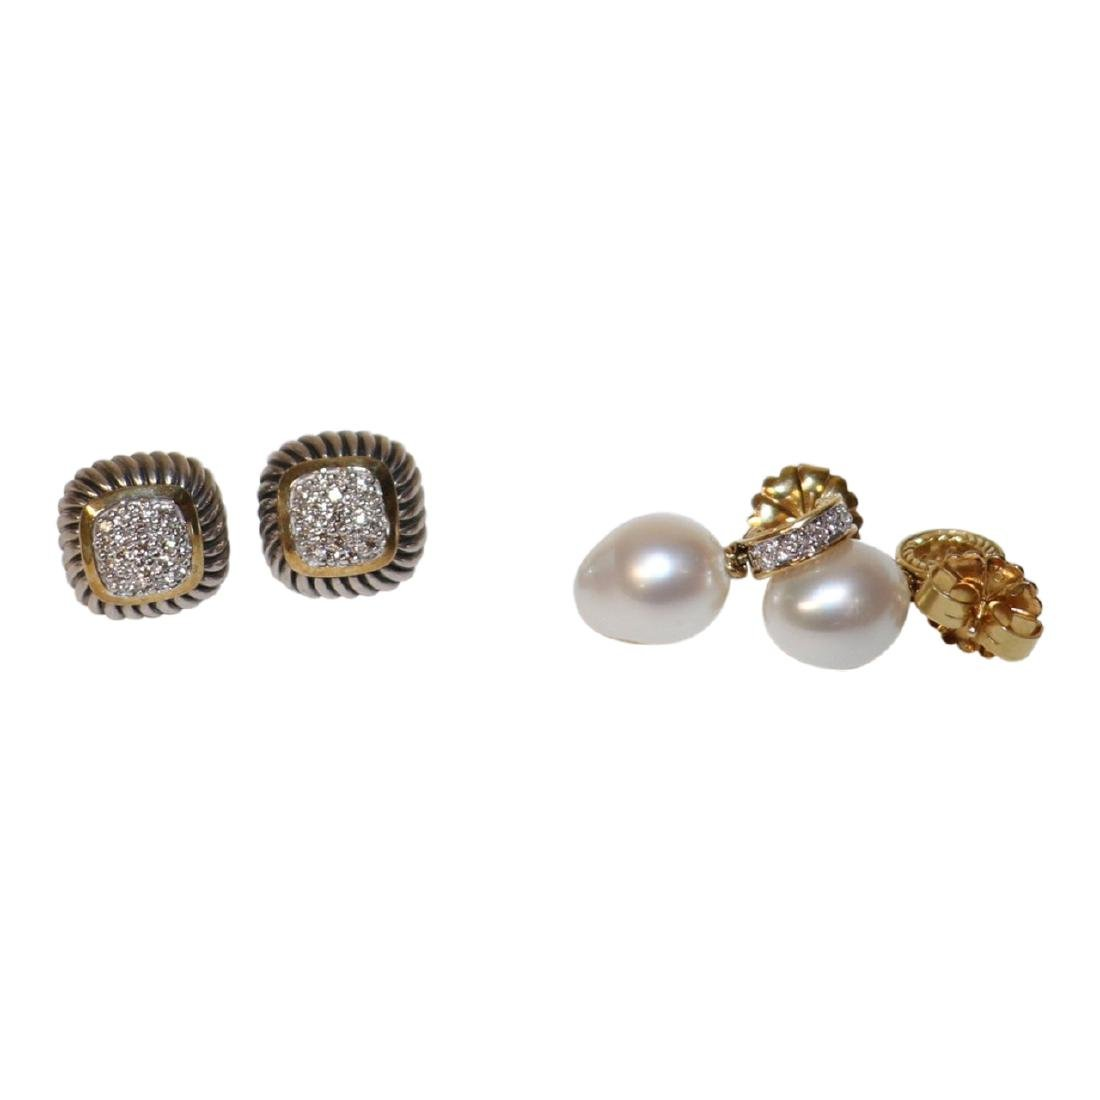 2 Pairs Diamond 18k Gold and Pearl Earrings